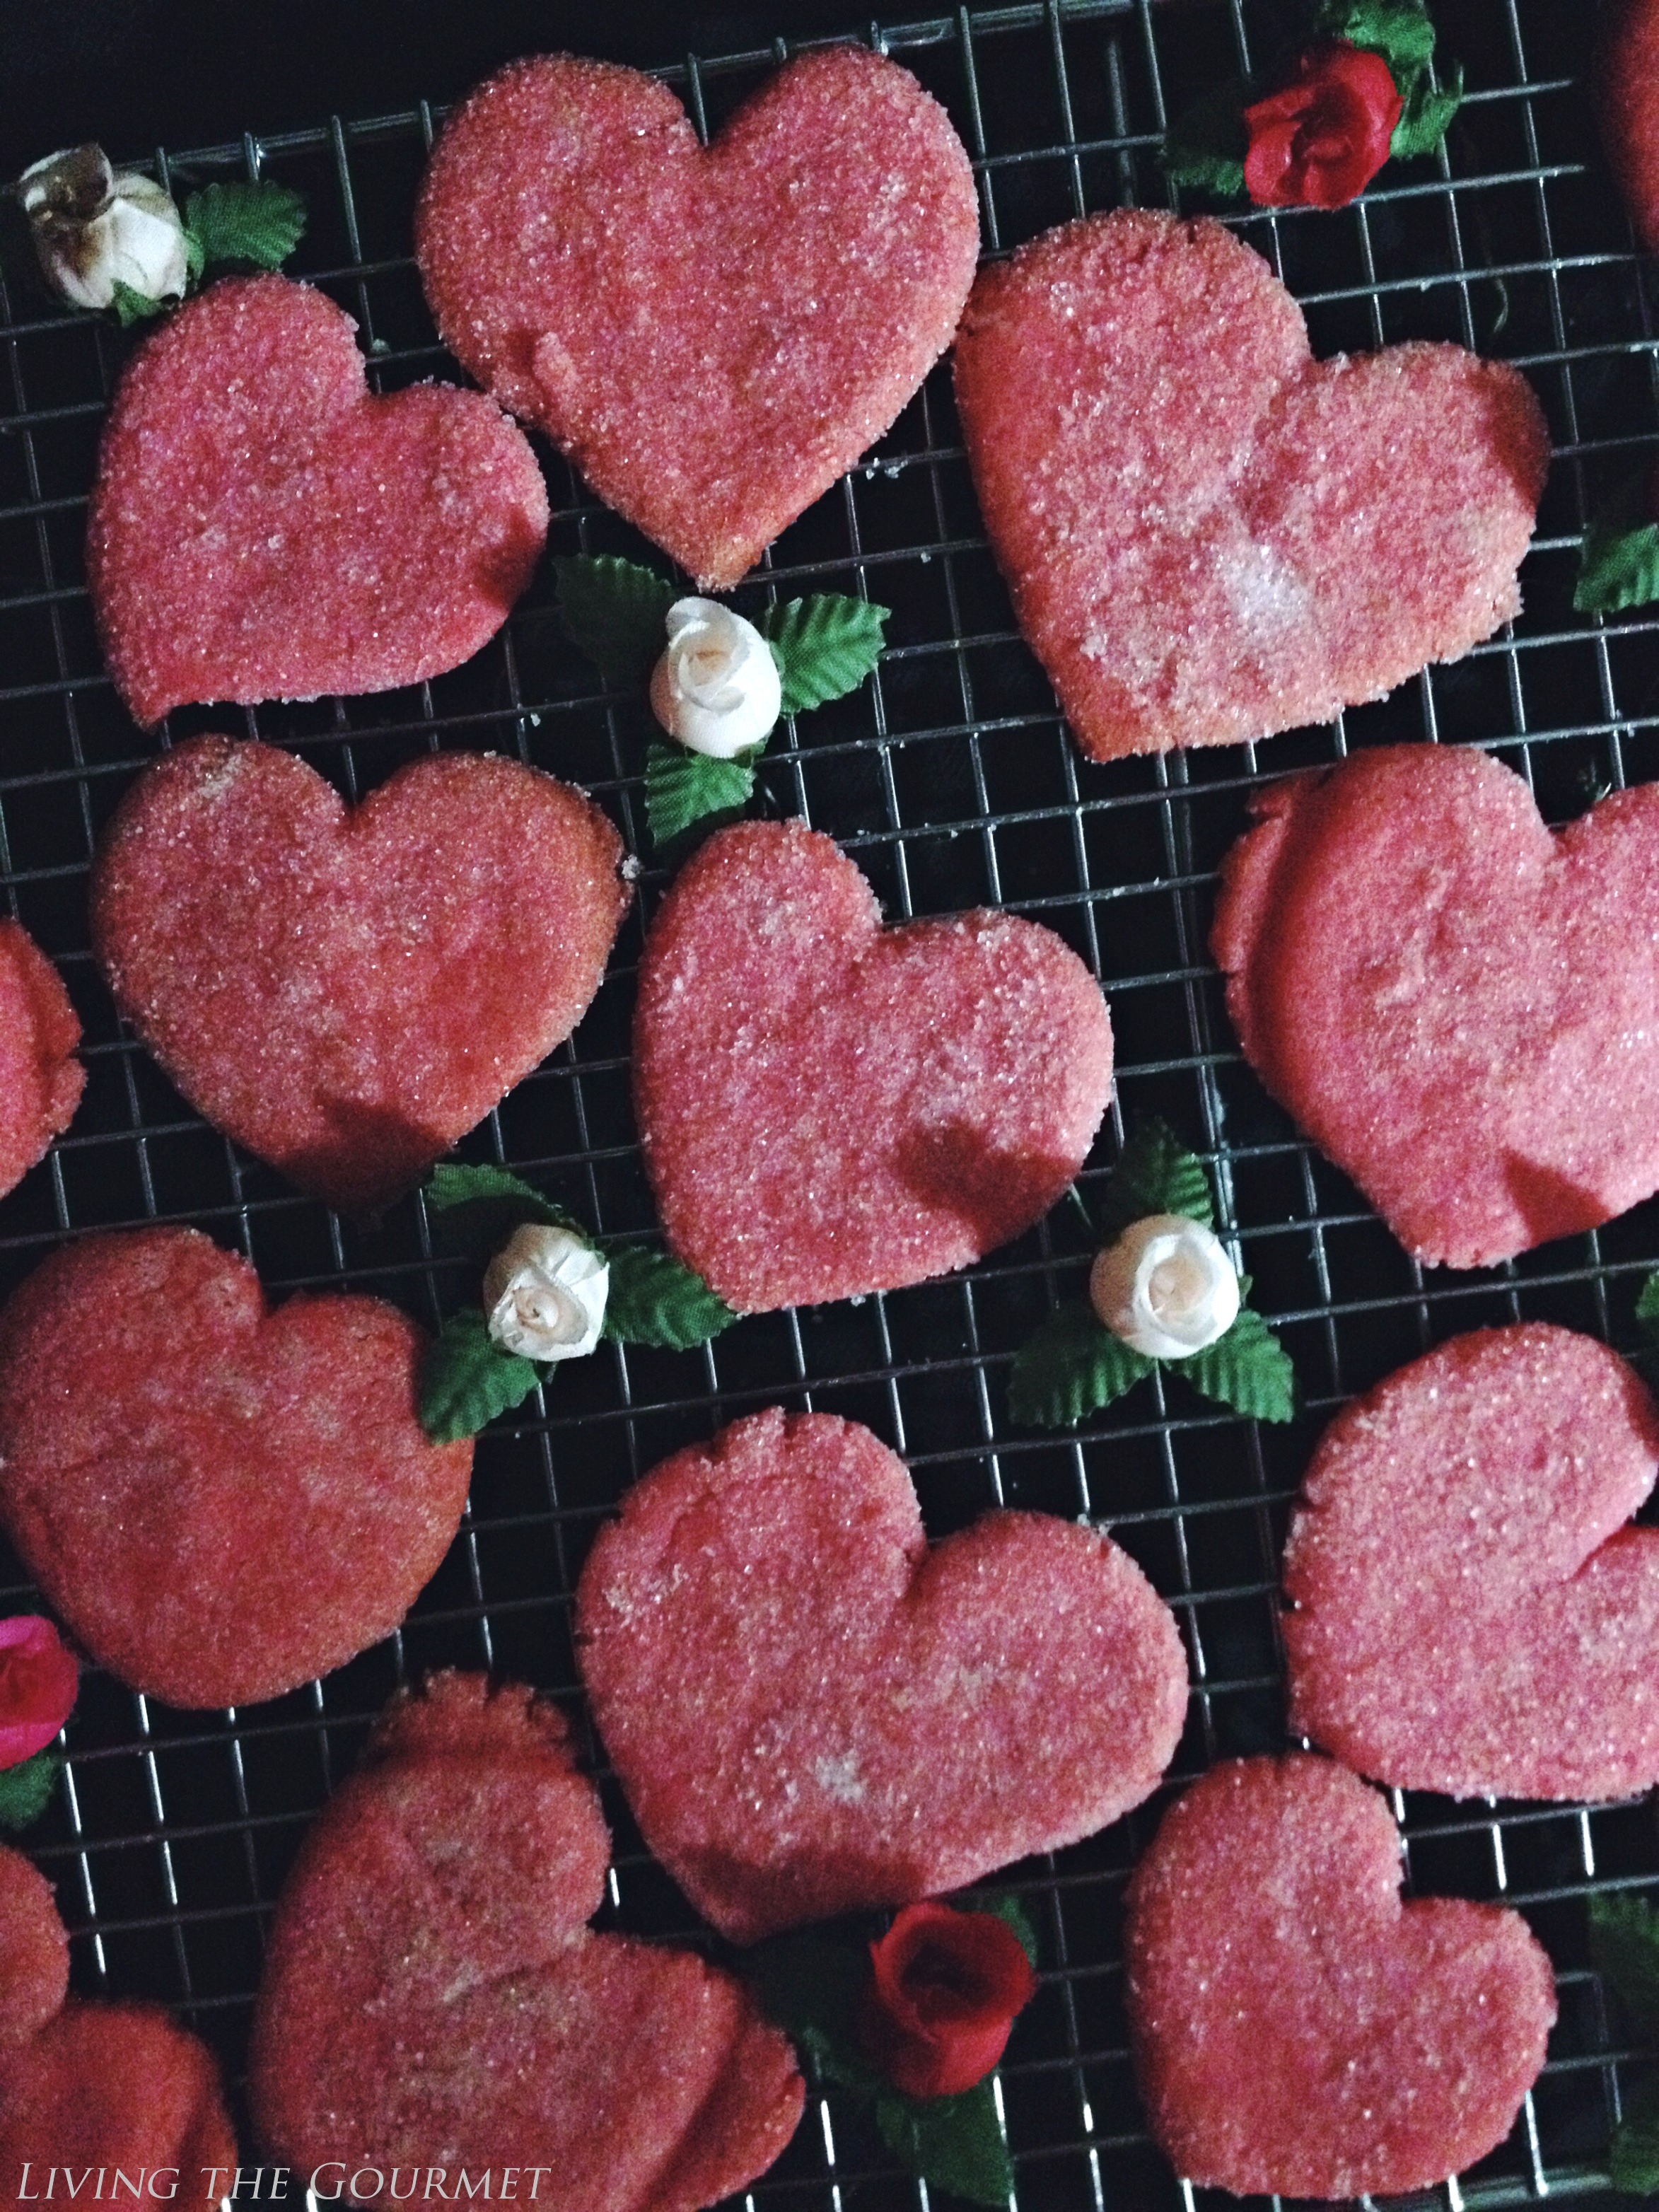 Living the Gourmet: Jell-O Valentine's Day Cookies